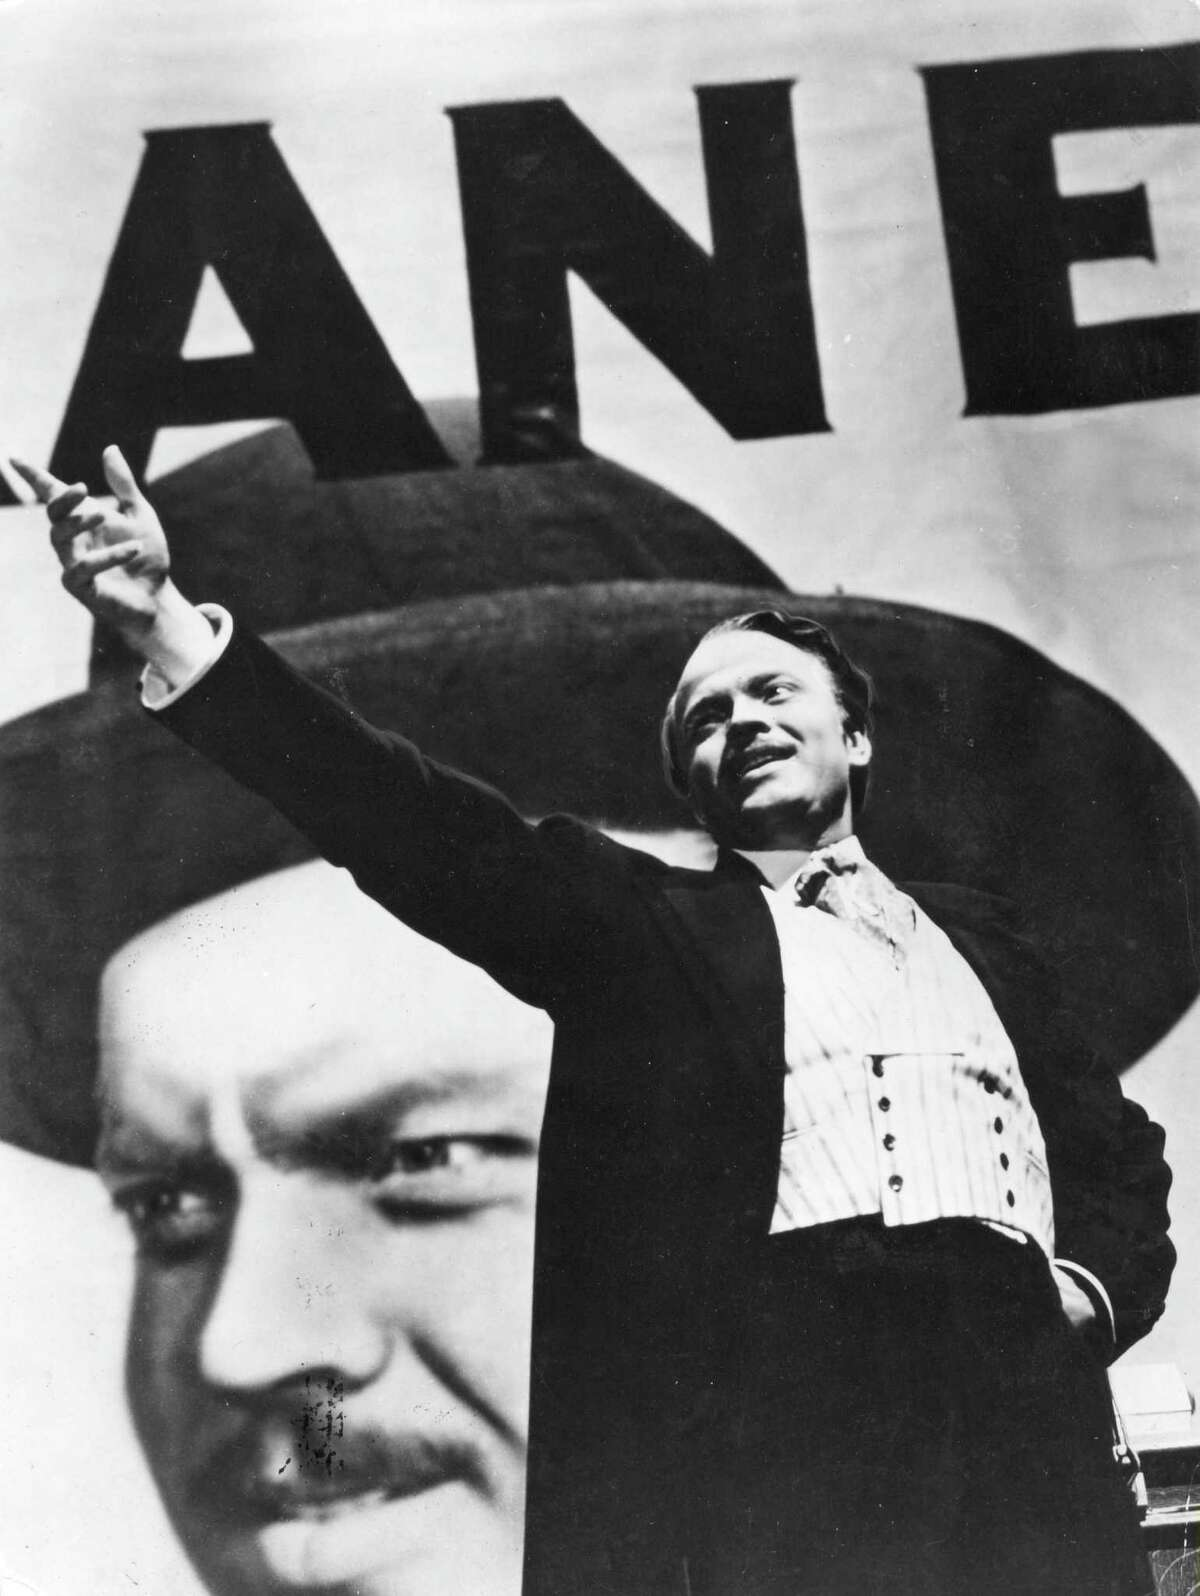 """Orson Welles in a scene from the movie """"Citizen Kane,"""" which he co-wrote with Herman Mankiewicz."""